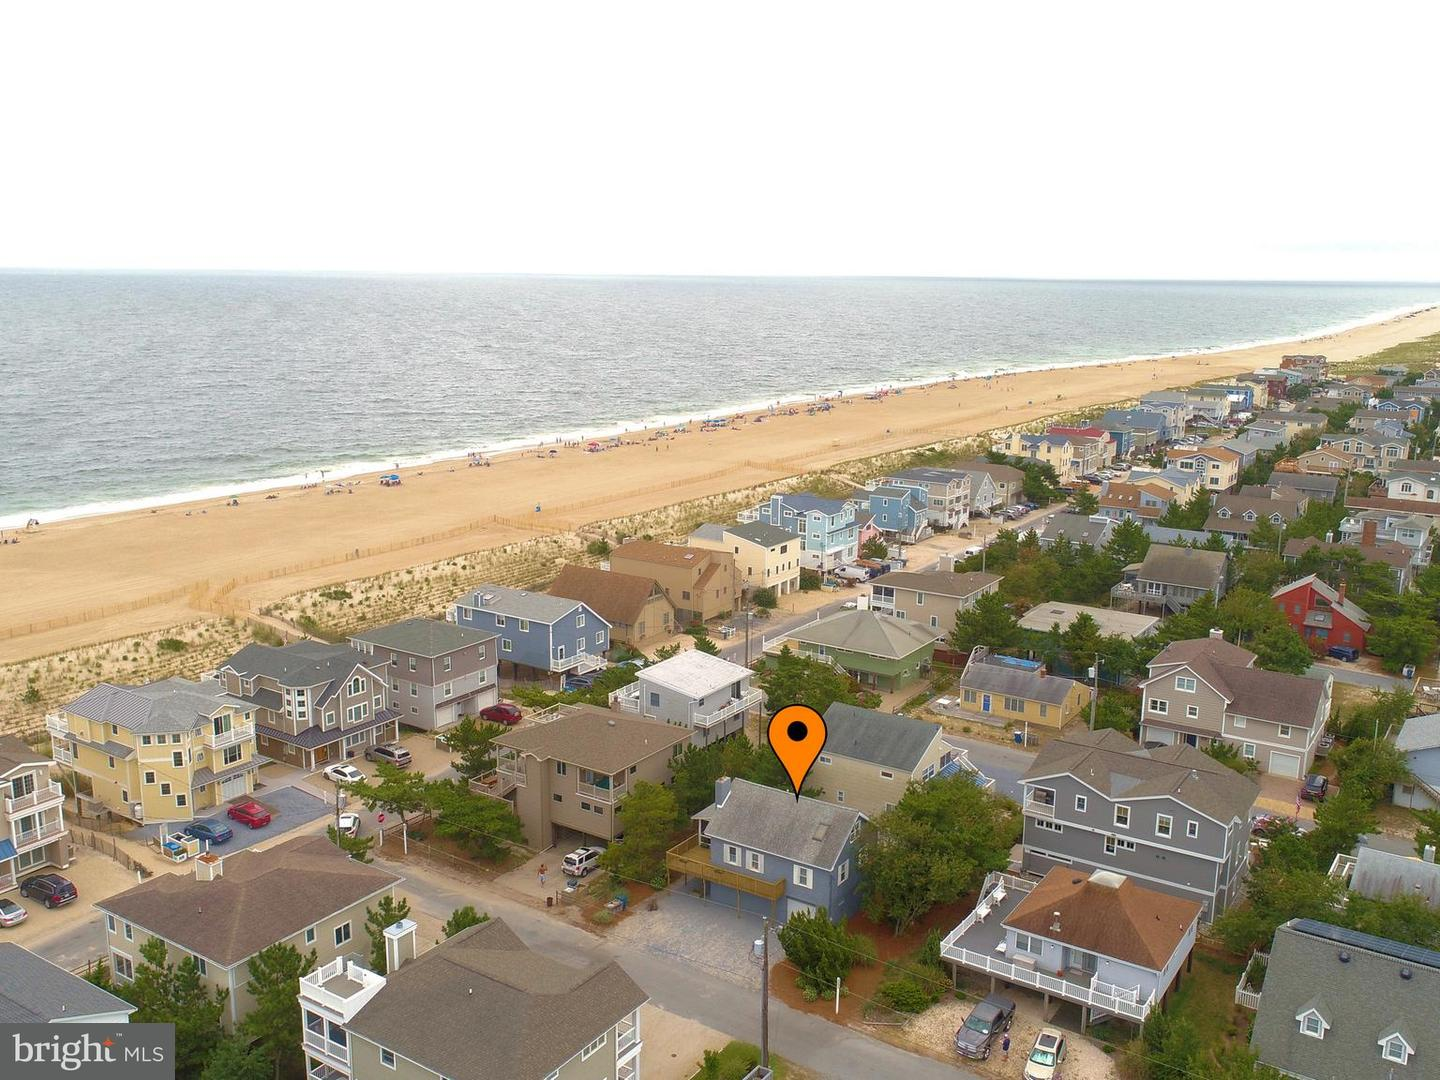 1002299338-300501704014-2018-08-30-10-08-41 4 S 4th St | South Bethany, DE Real Estate For Sale | MLS# 1002299338  - 1st Choice Properties